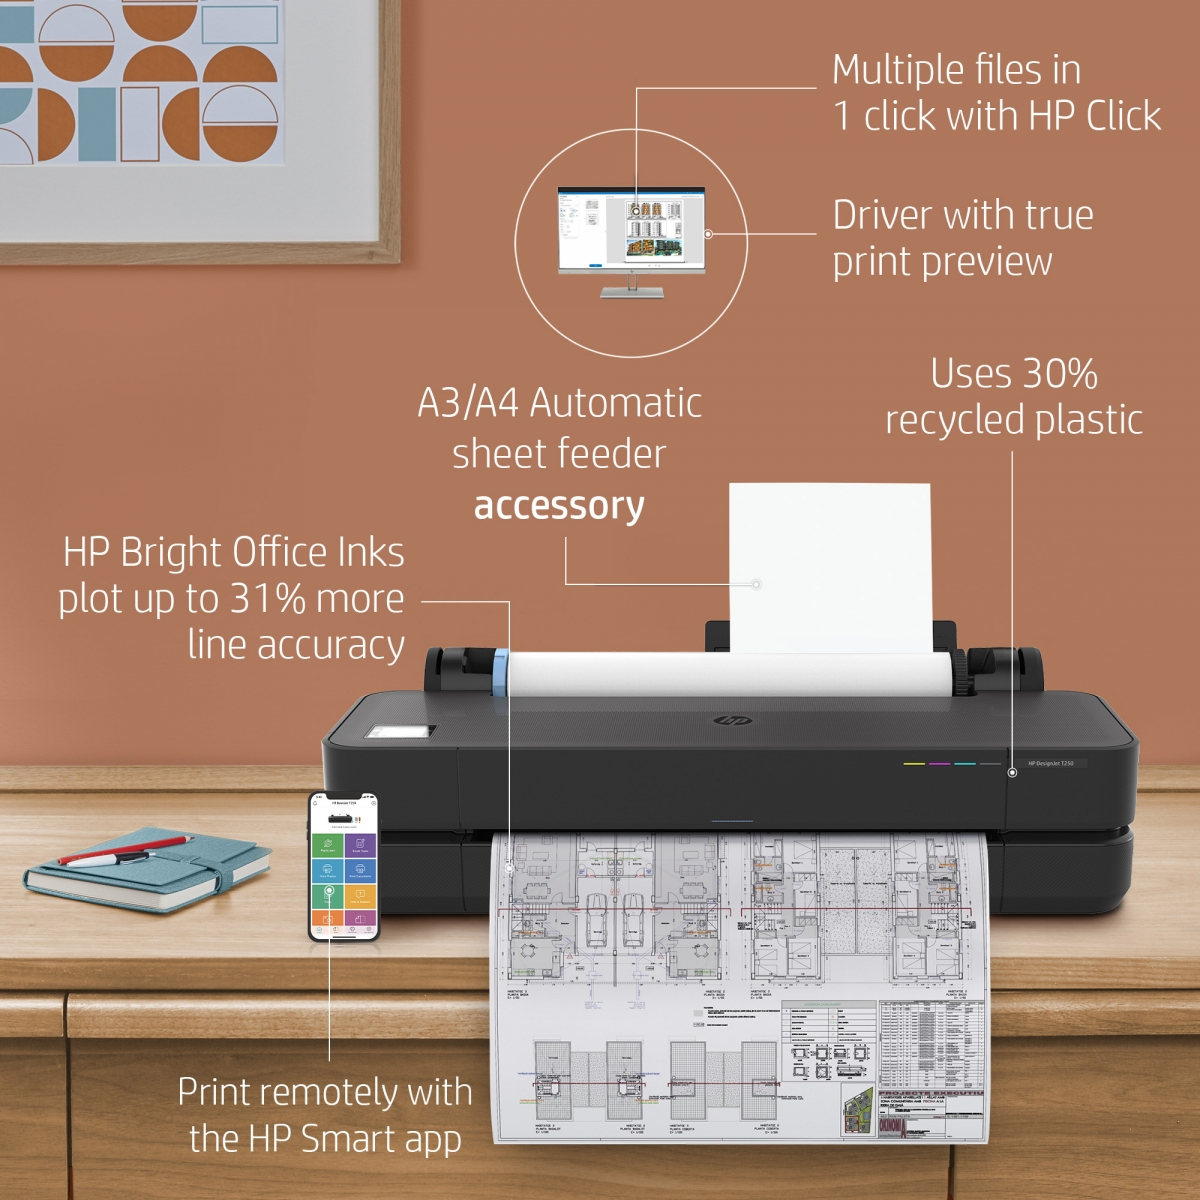 DesignJet T250 24-inch Printer 5HB06A - key hot points about your printer